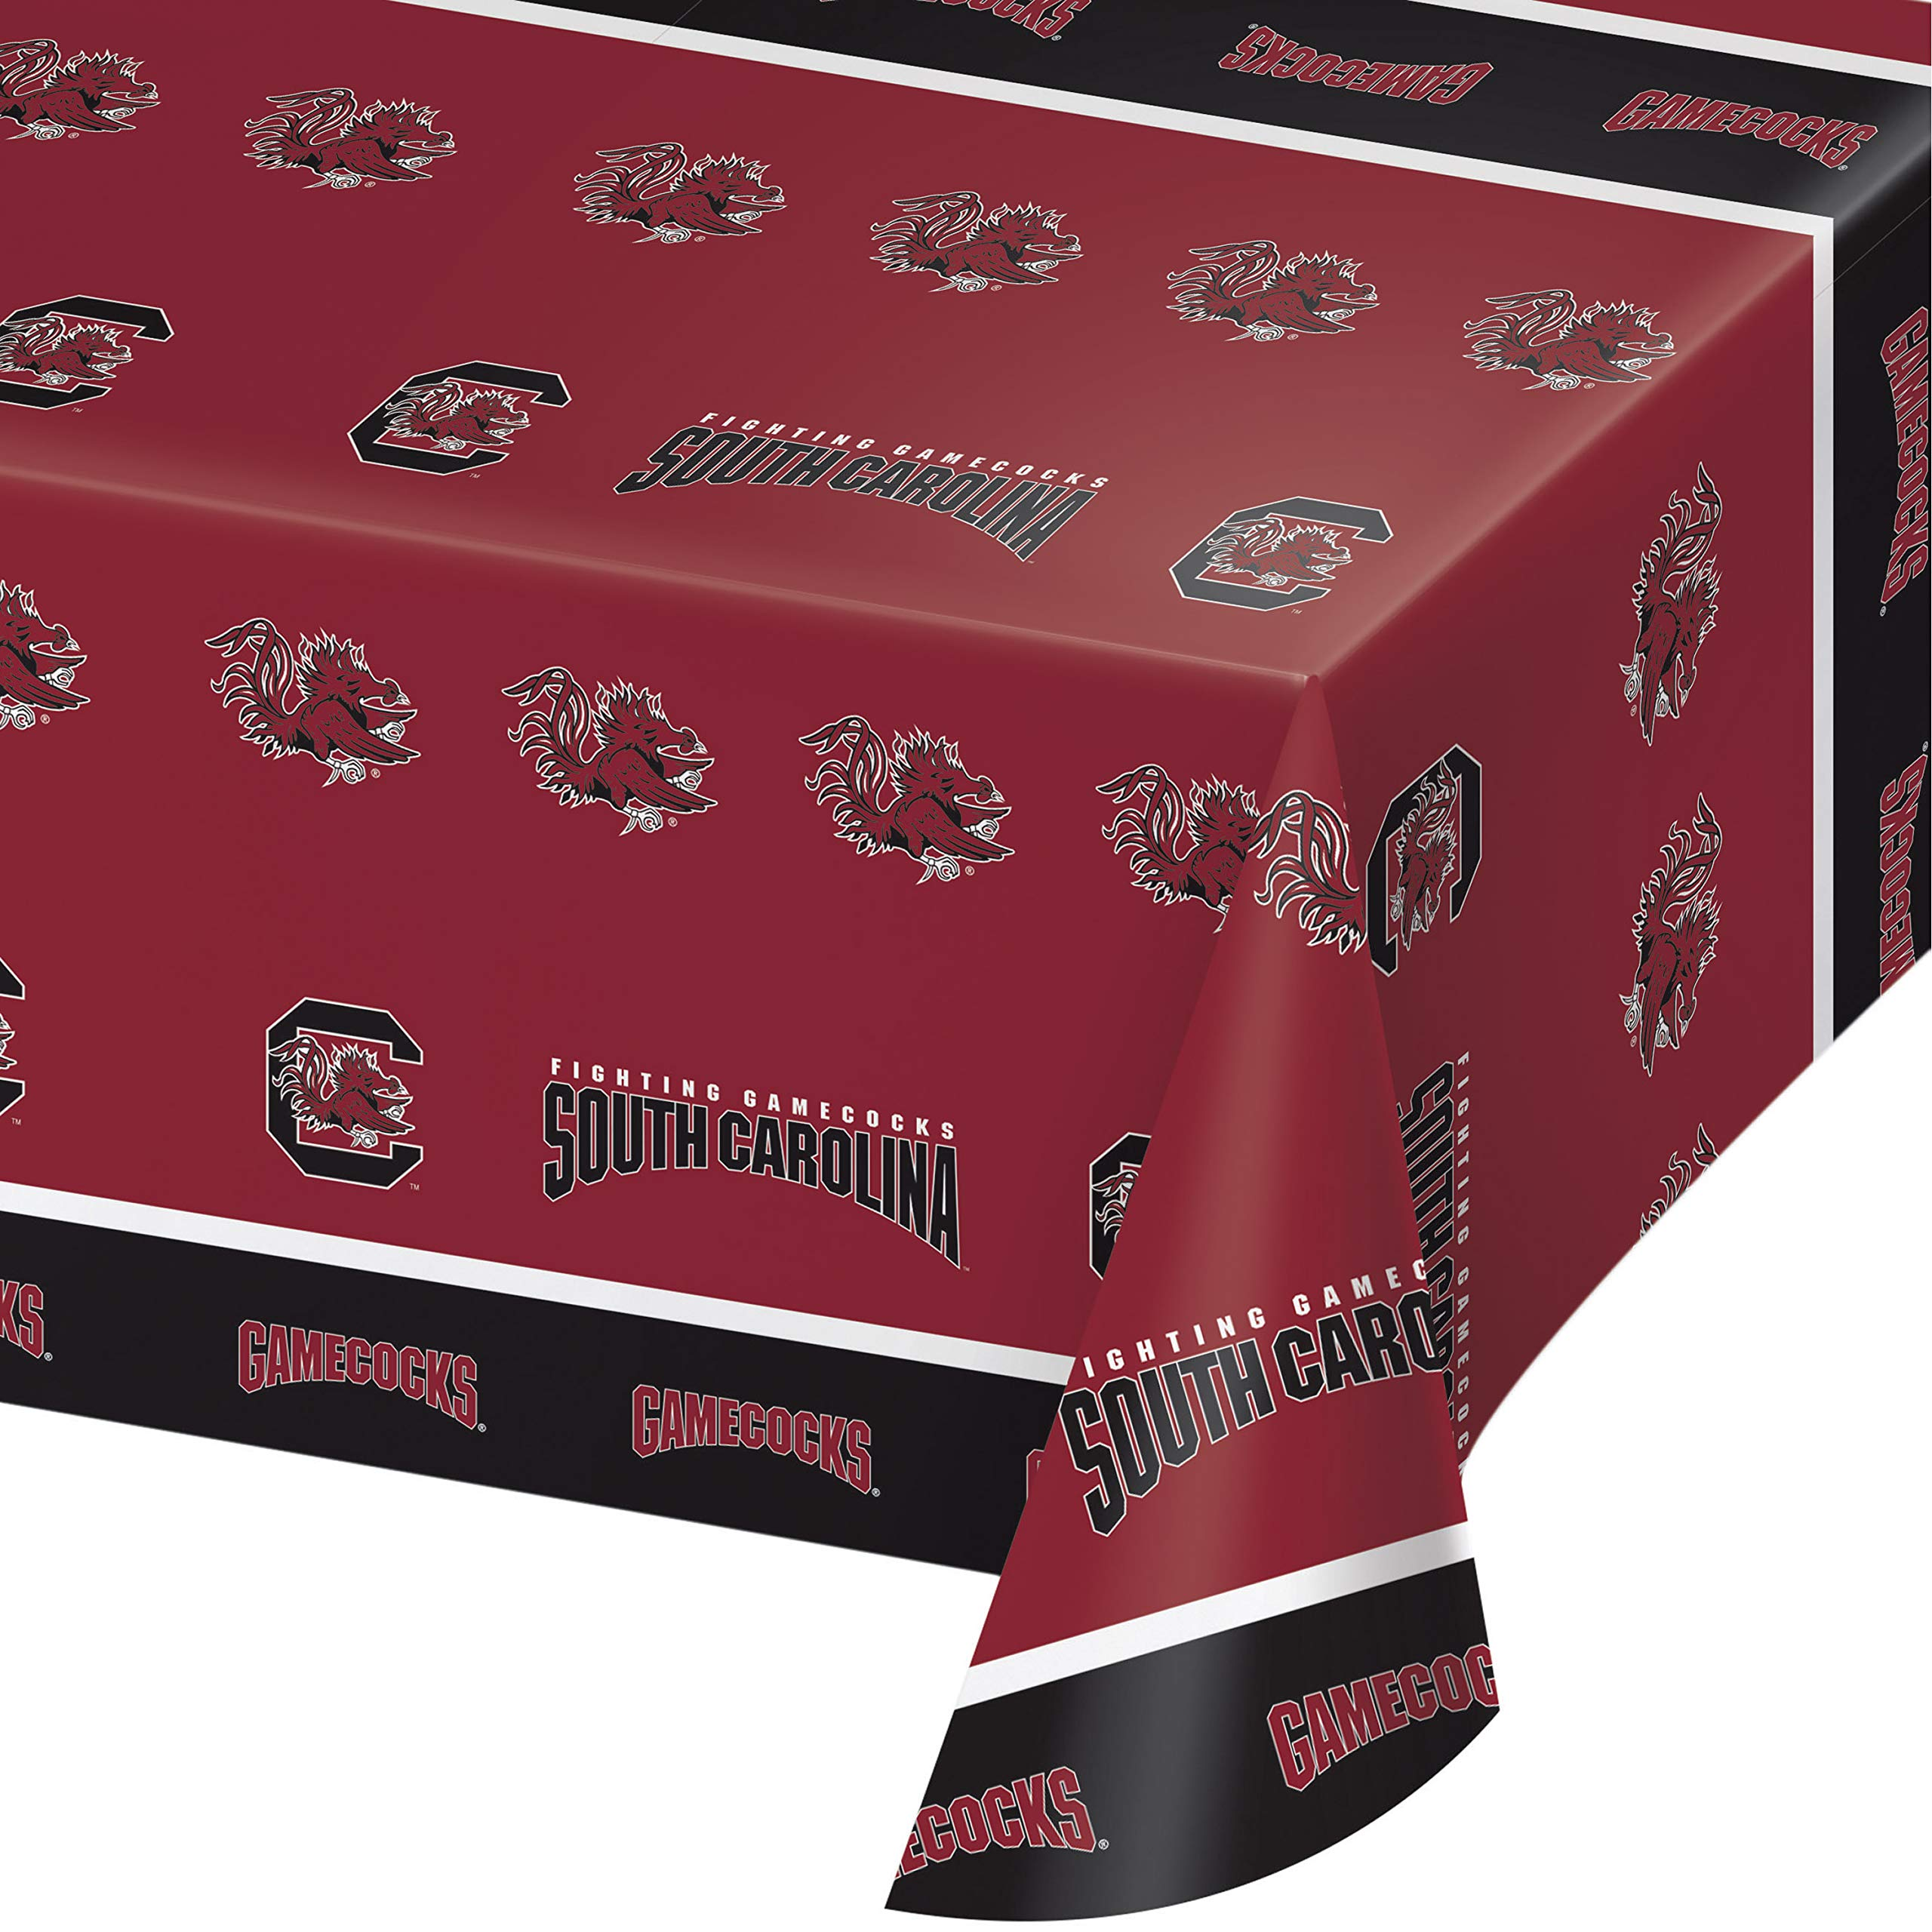 University of South Carolina Plastic Tablecloths, 3 ct by Creative Converting